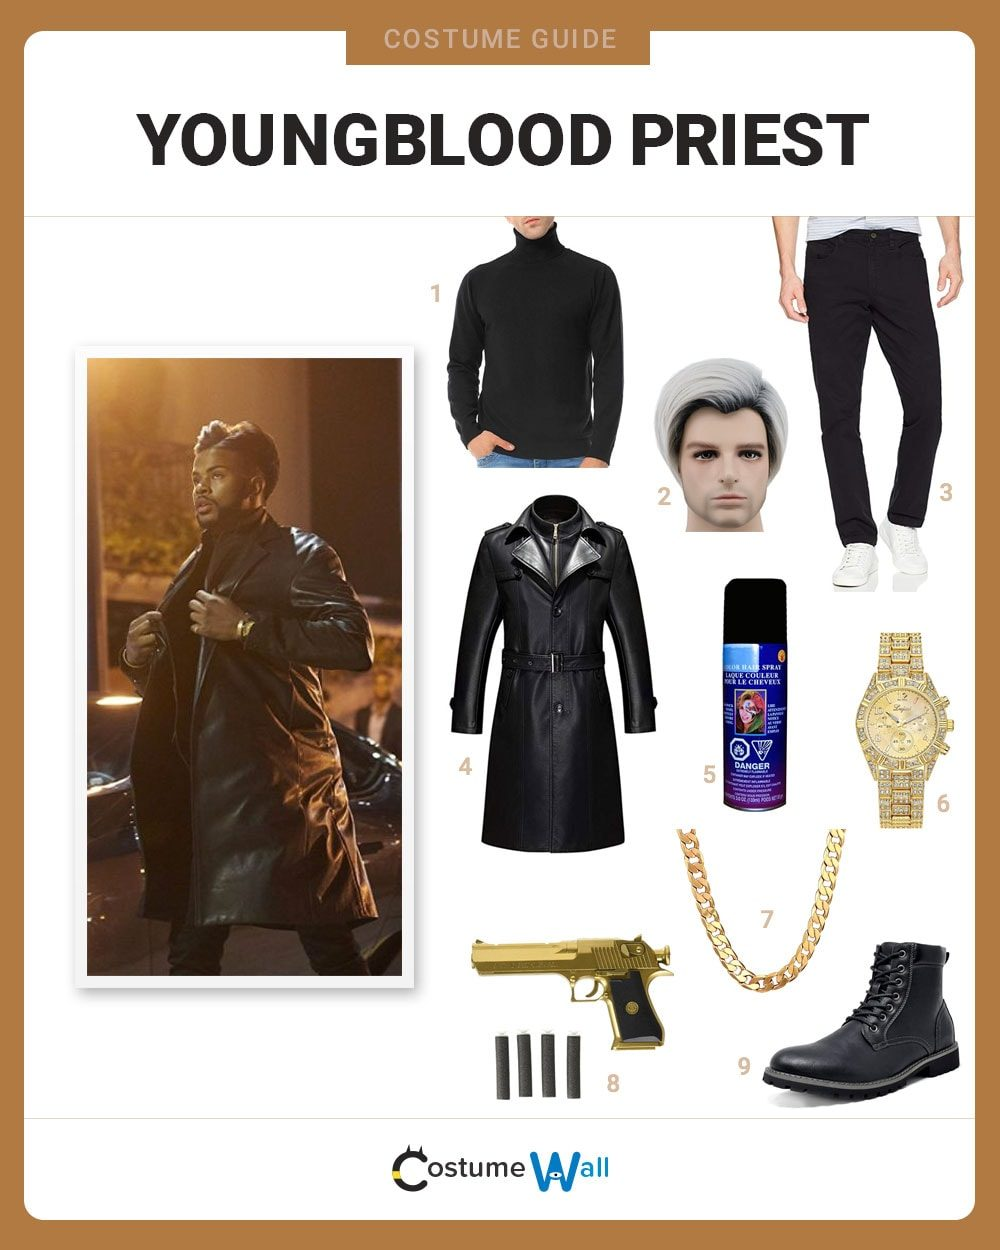 Youngblood Priest Costume Guide